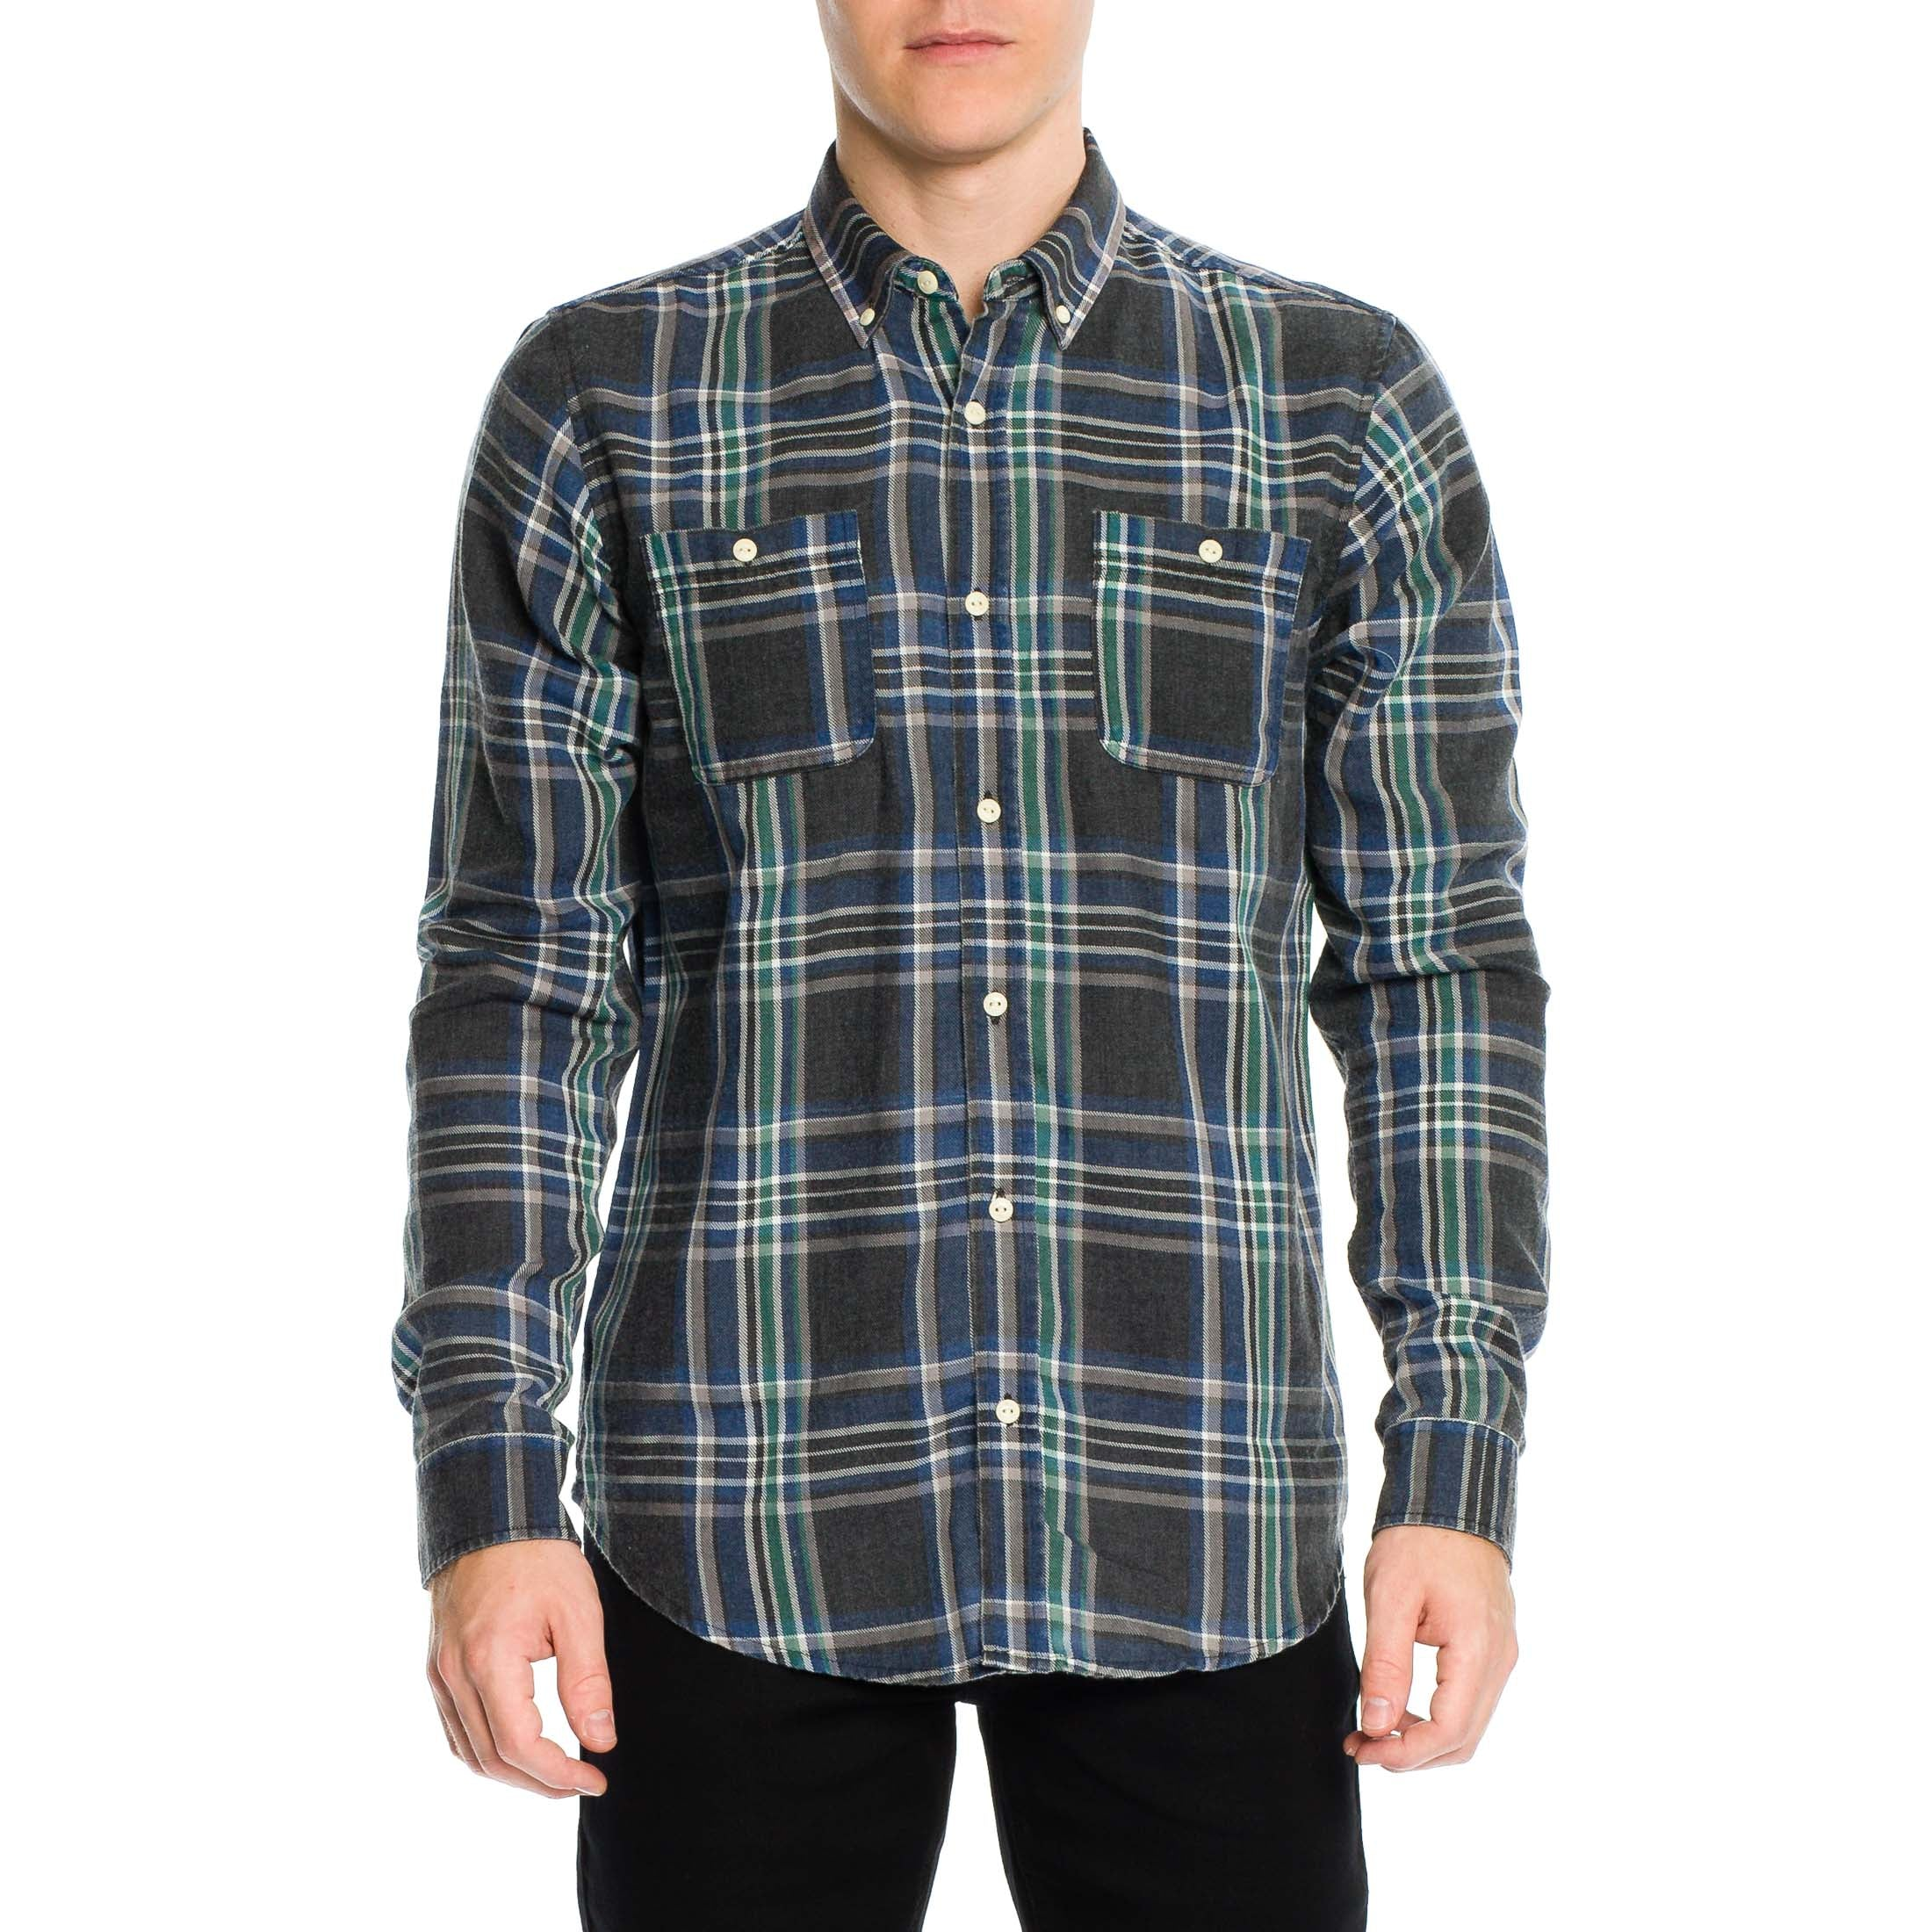 Soho Shirt - Black - Ezekiel Clothing